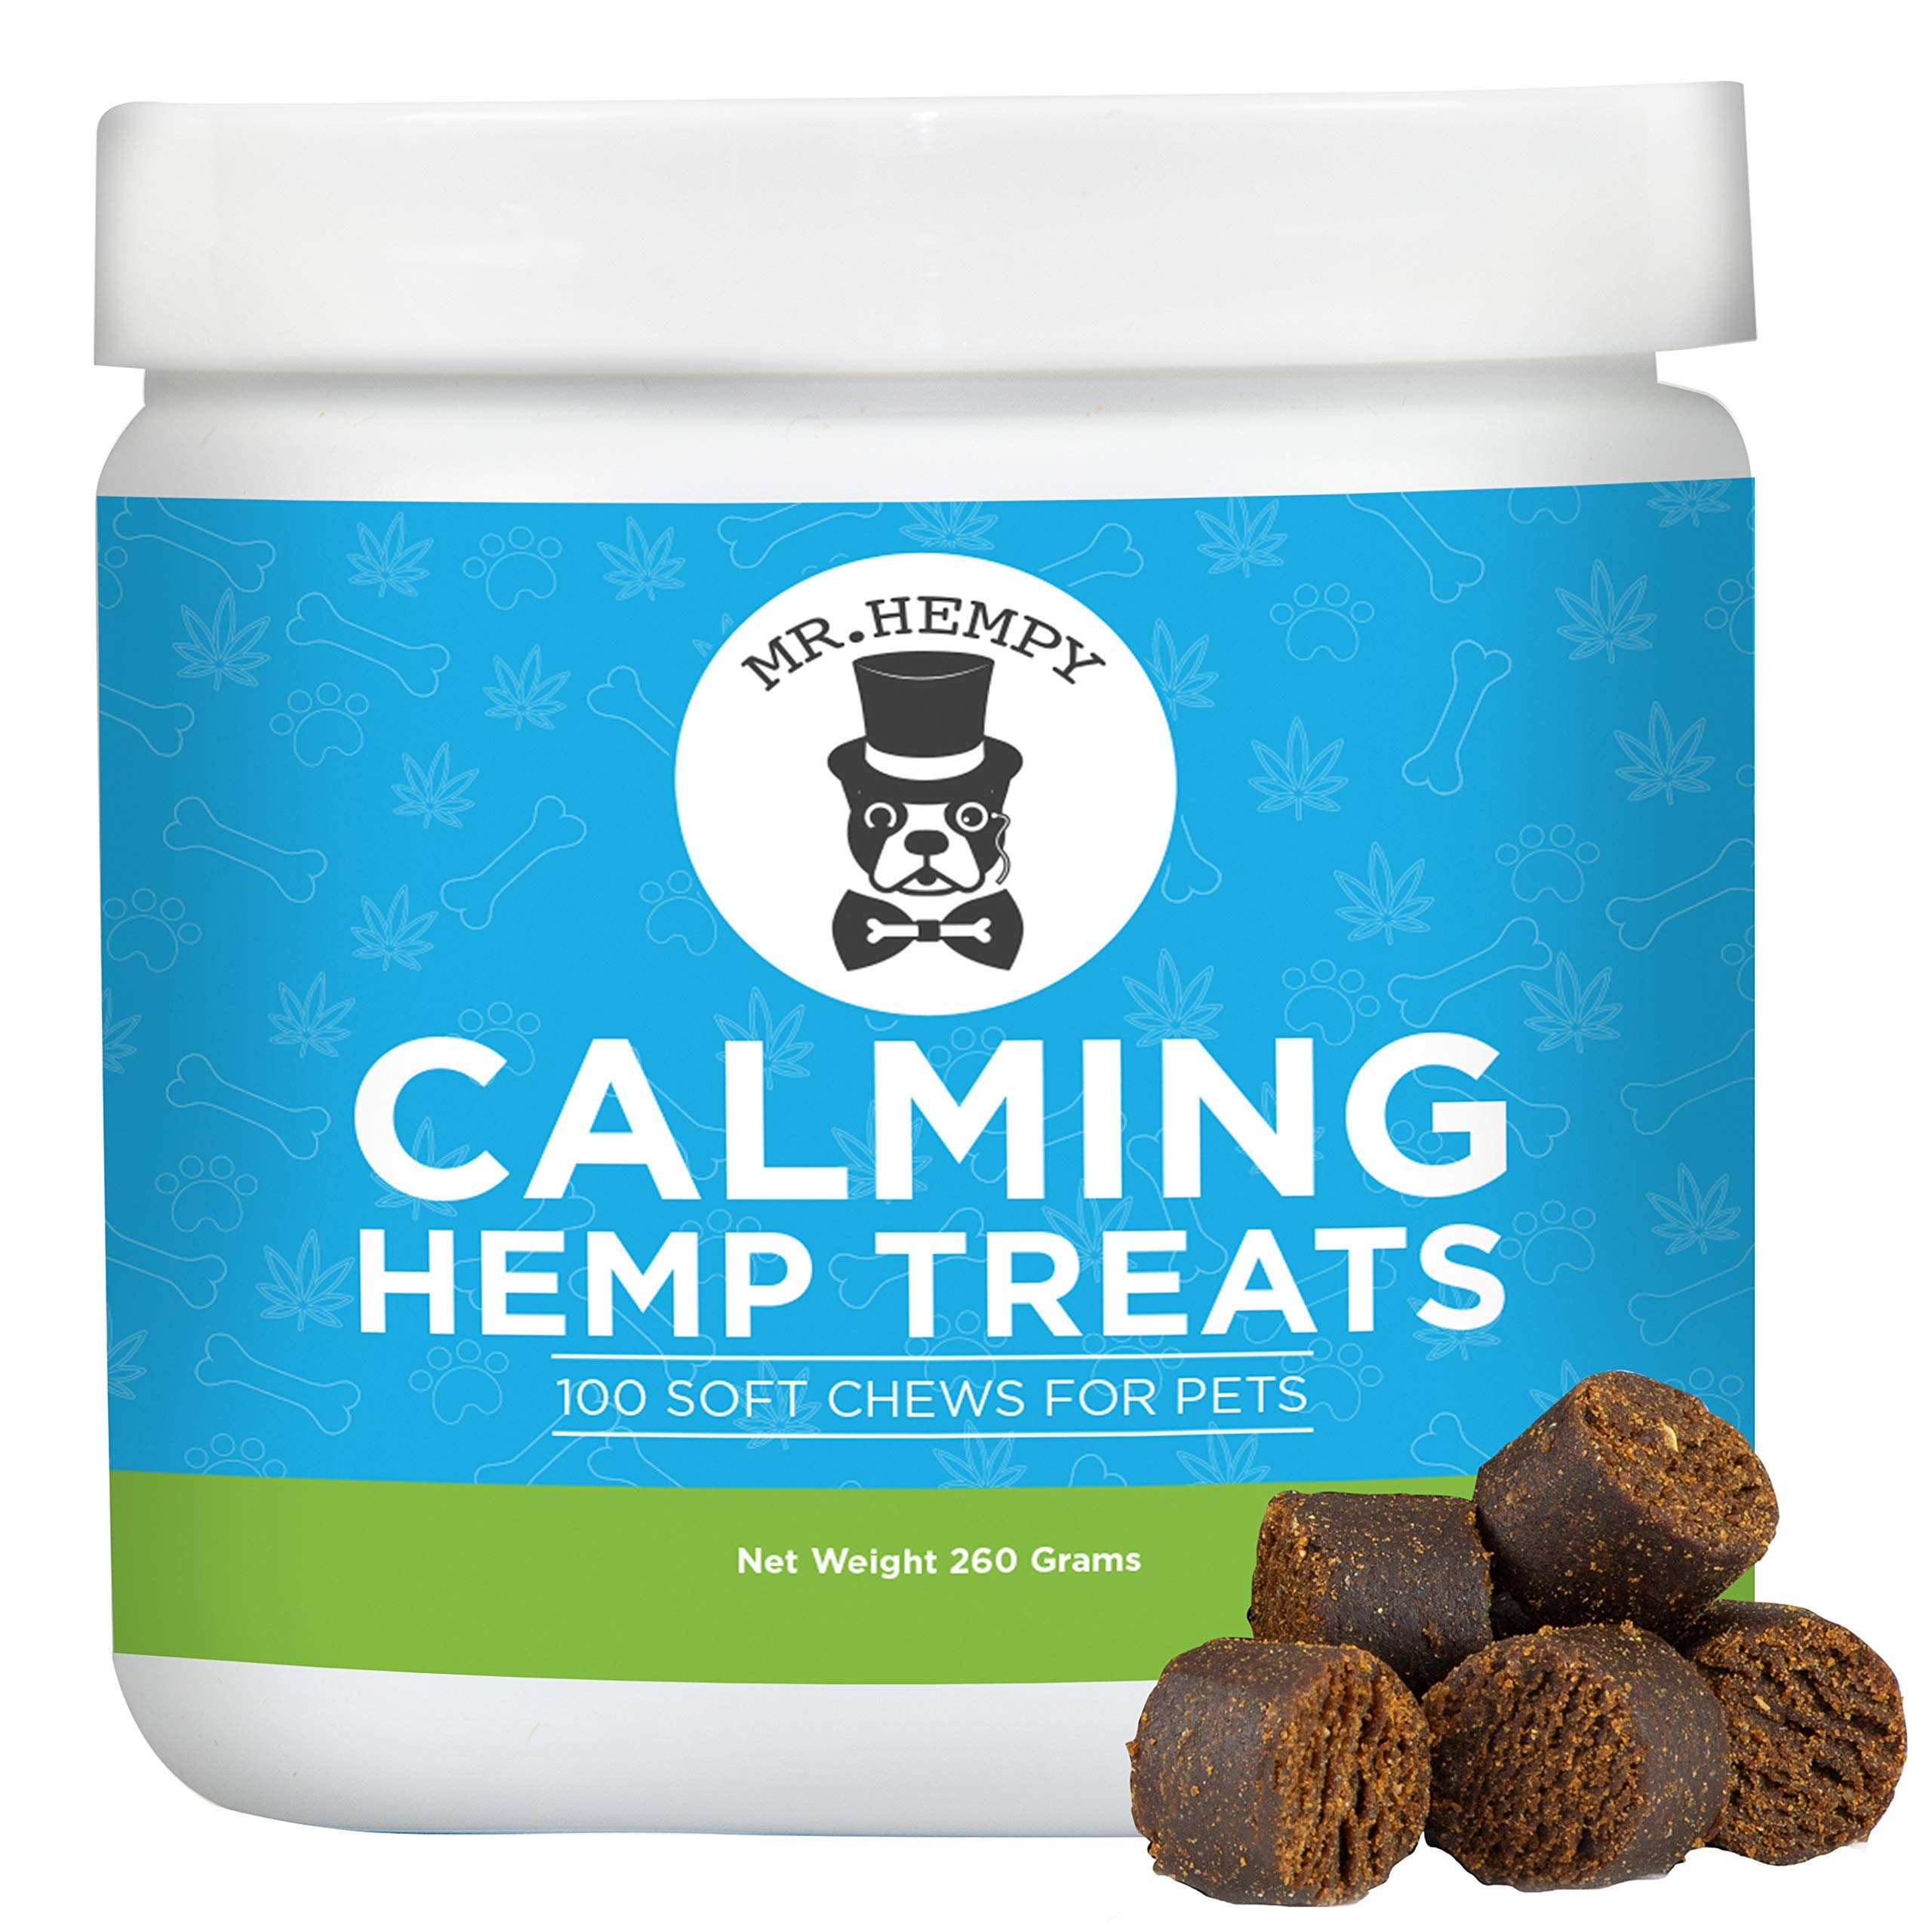 Calming Treats for Dogs - Great Anxiety and Stress Relief, Calming Aid and Composure Support - 100 Tasty Chews - with Hemp Oil, Melatonin, Thiamine and Camomile, Made in USA